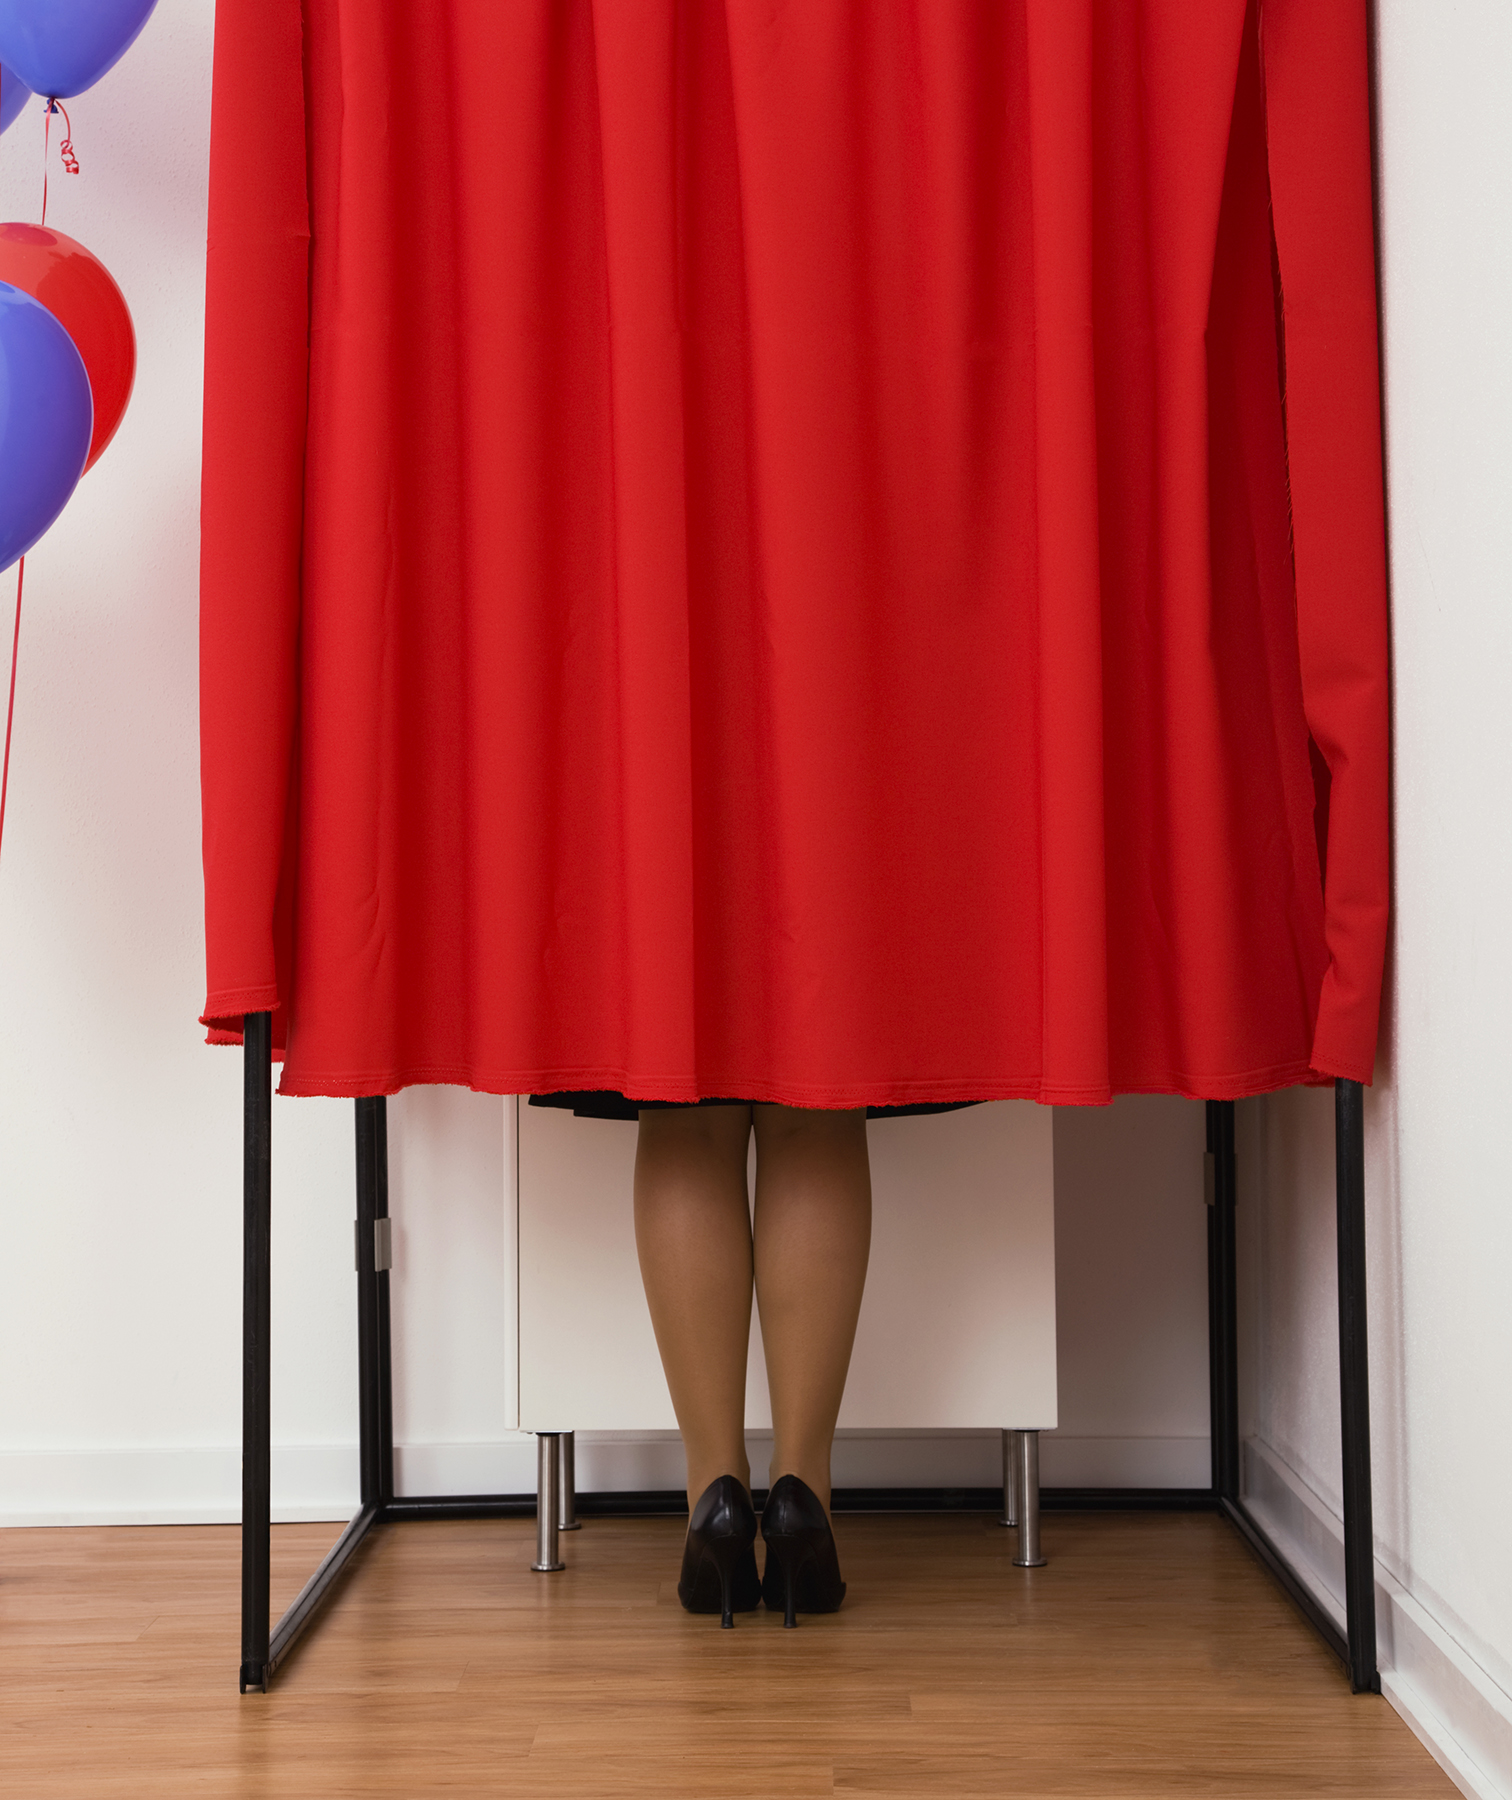 woman-voting-booth